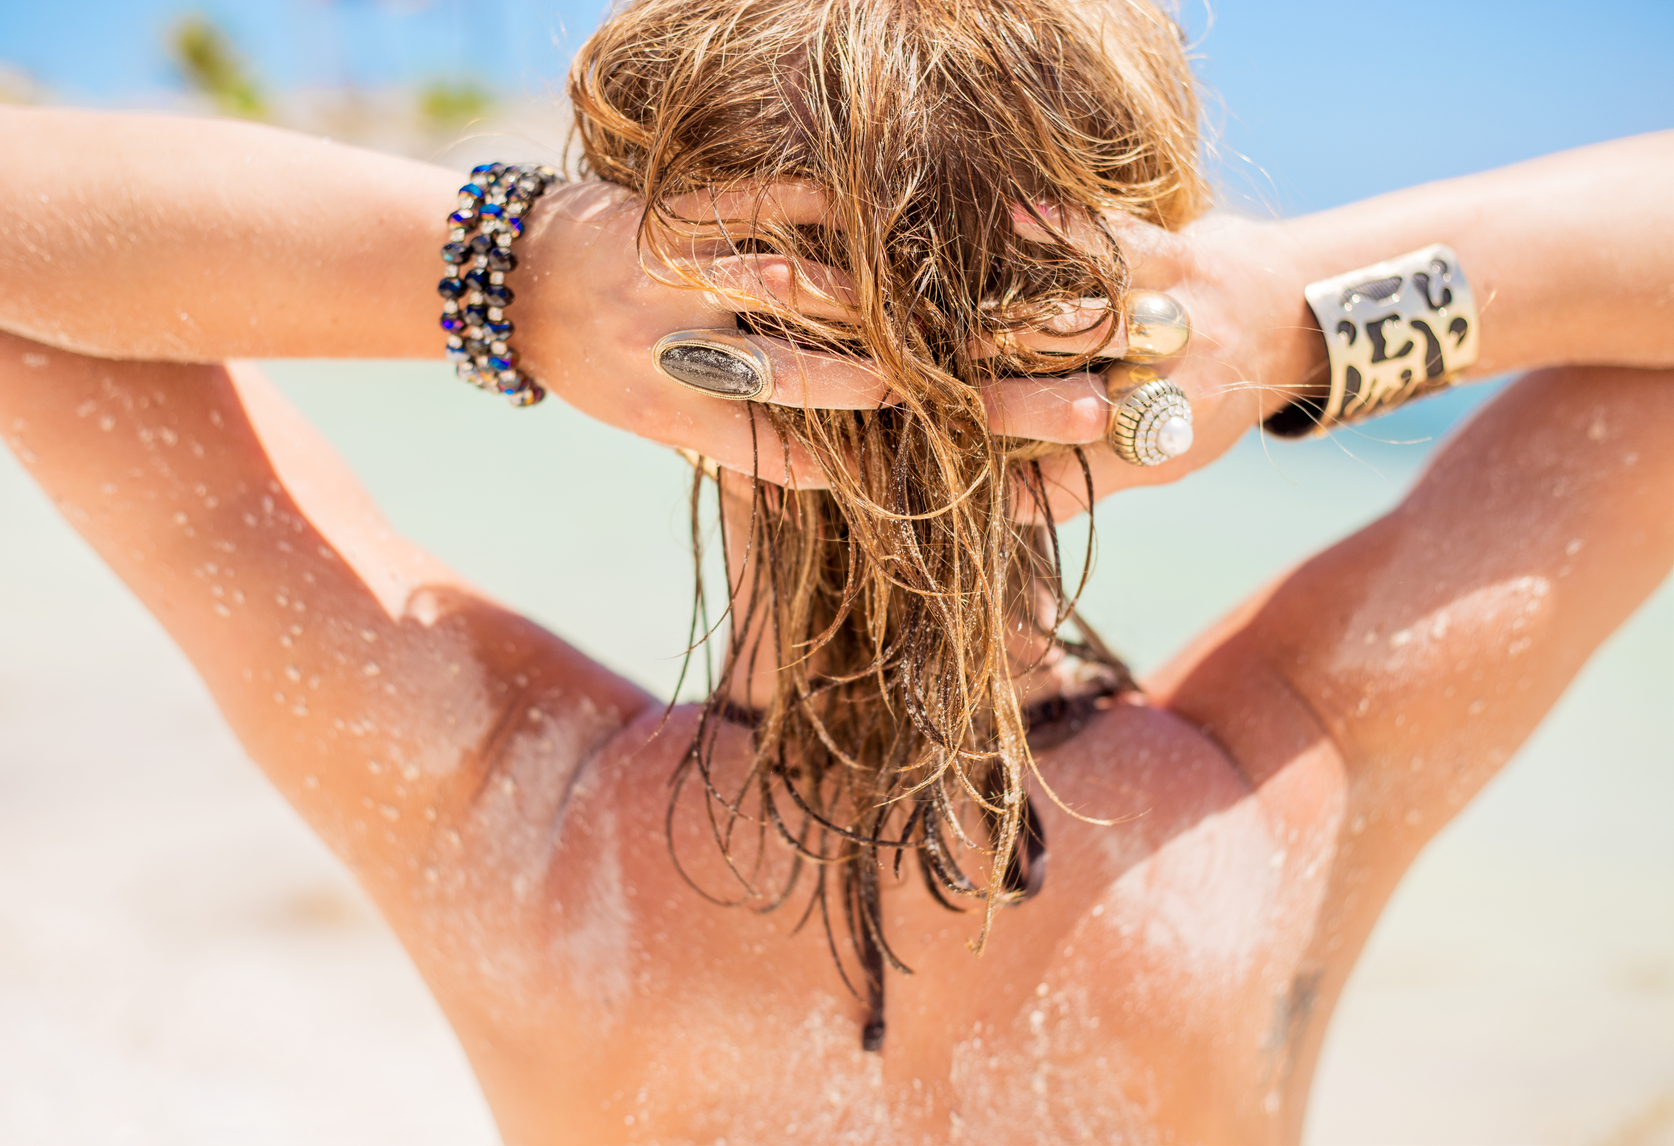 Protect your jewelry when traveling this summer!